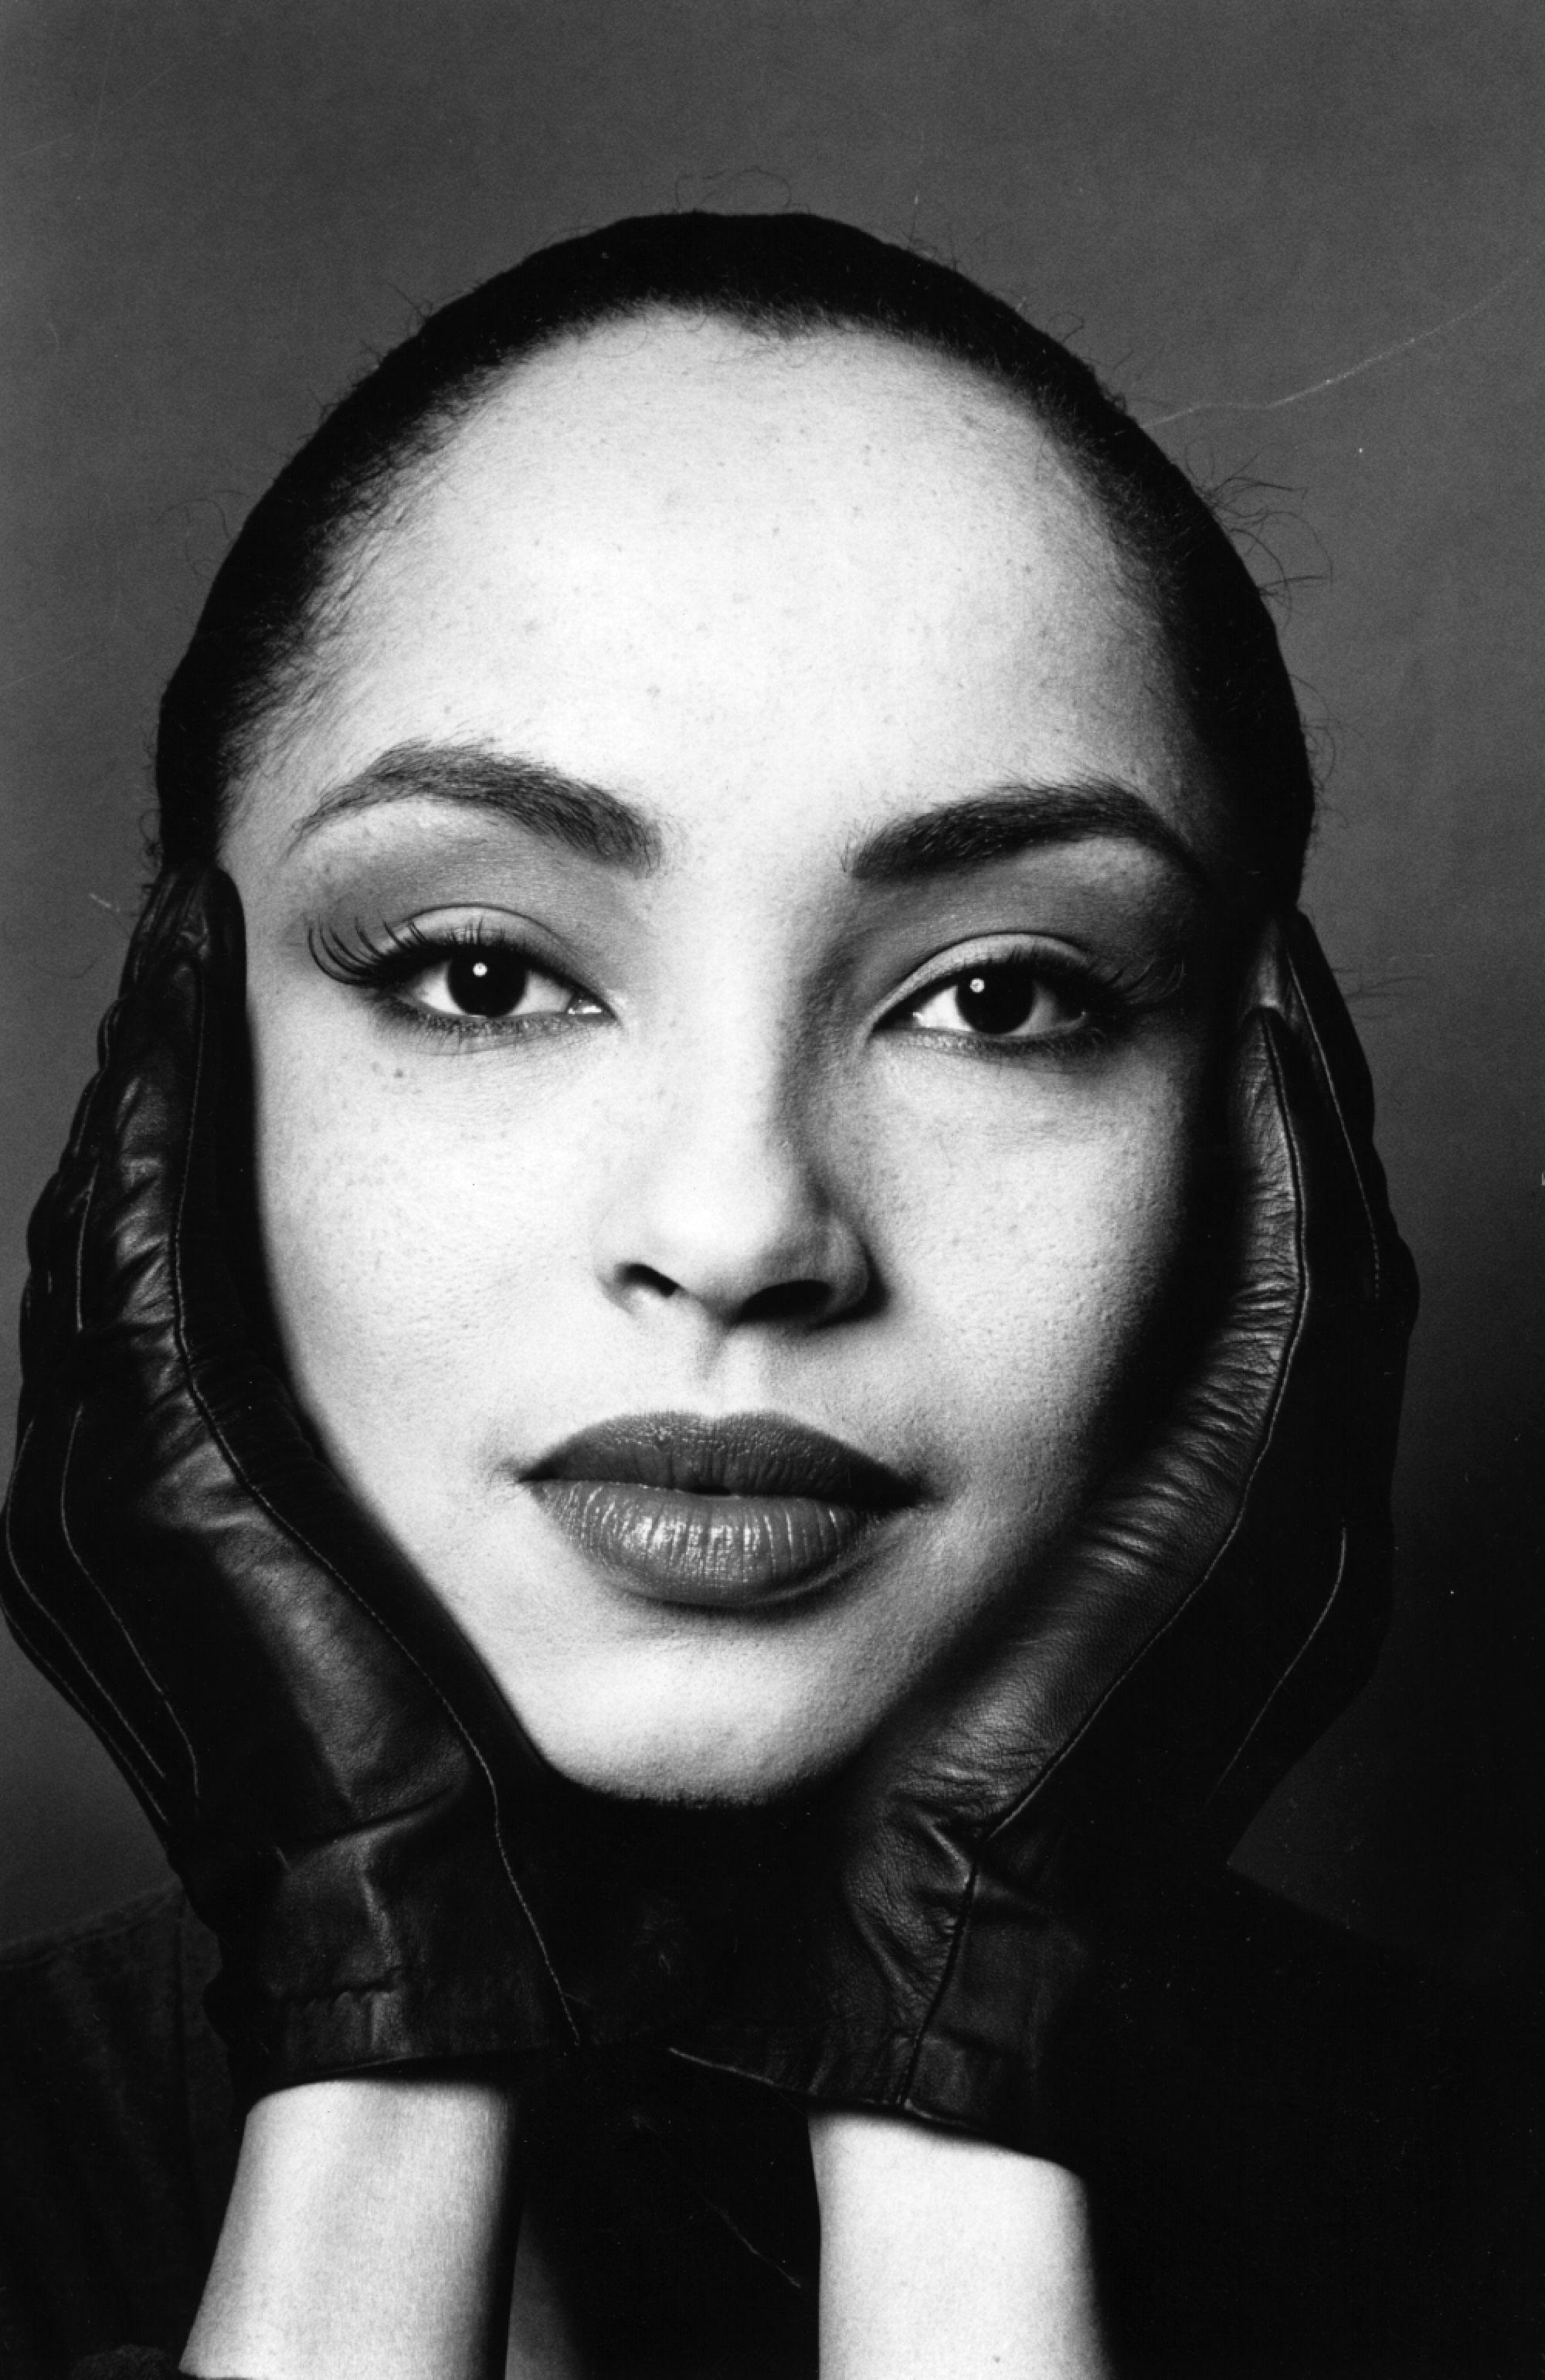 After 10-year absence, Sade reconnects with fans - The Blade